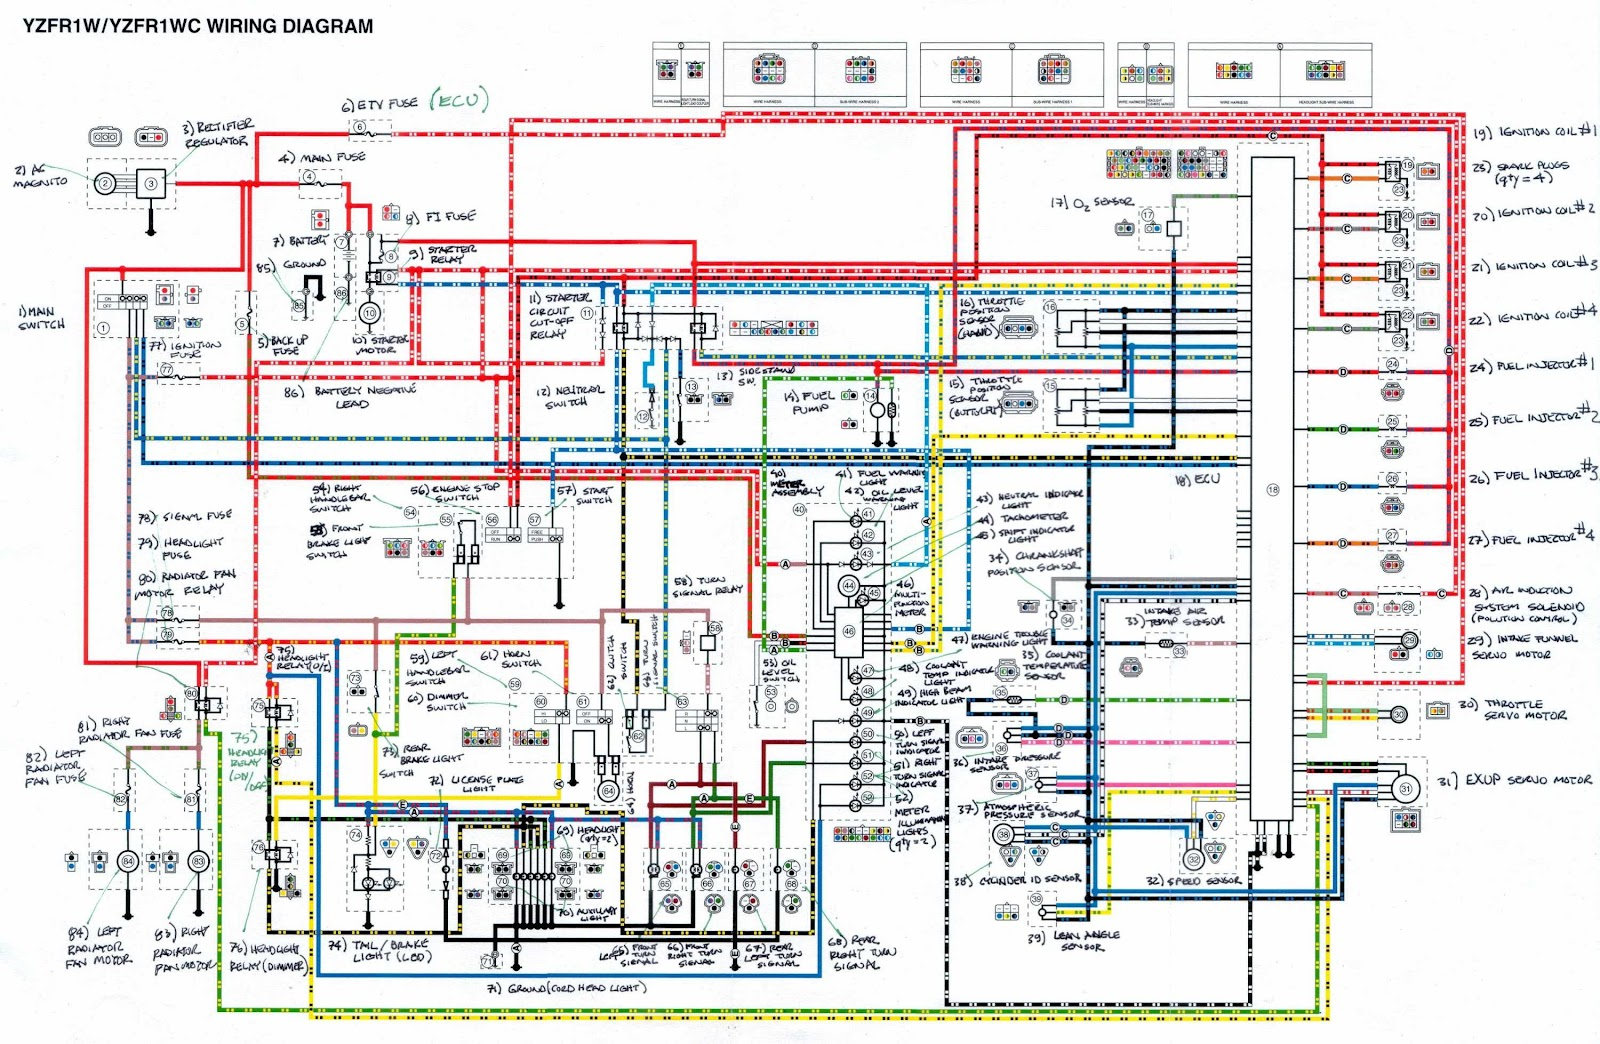 Wiring Diagram 2006 Yamaha Yzf R6 - Wiring Diagram & Cable ... on